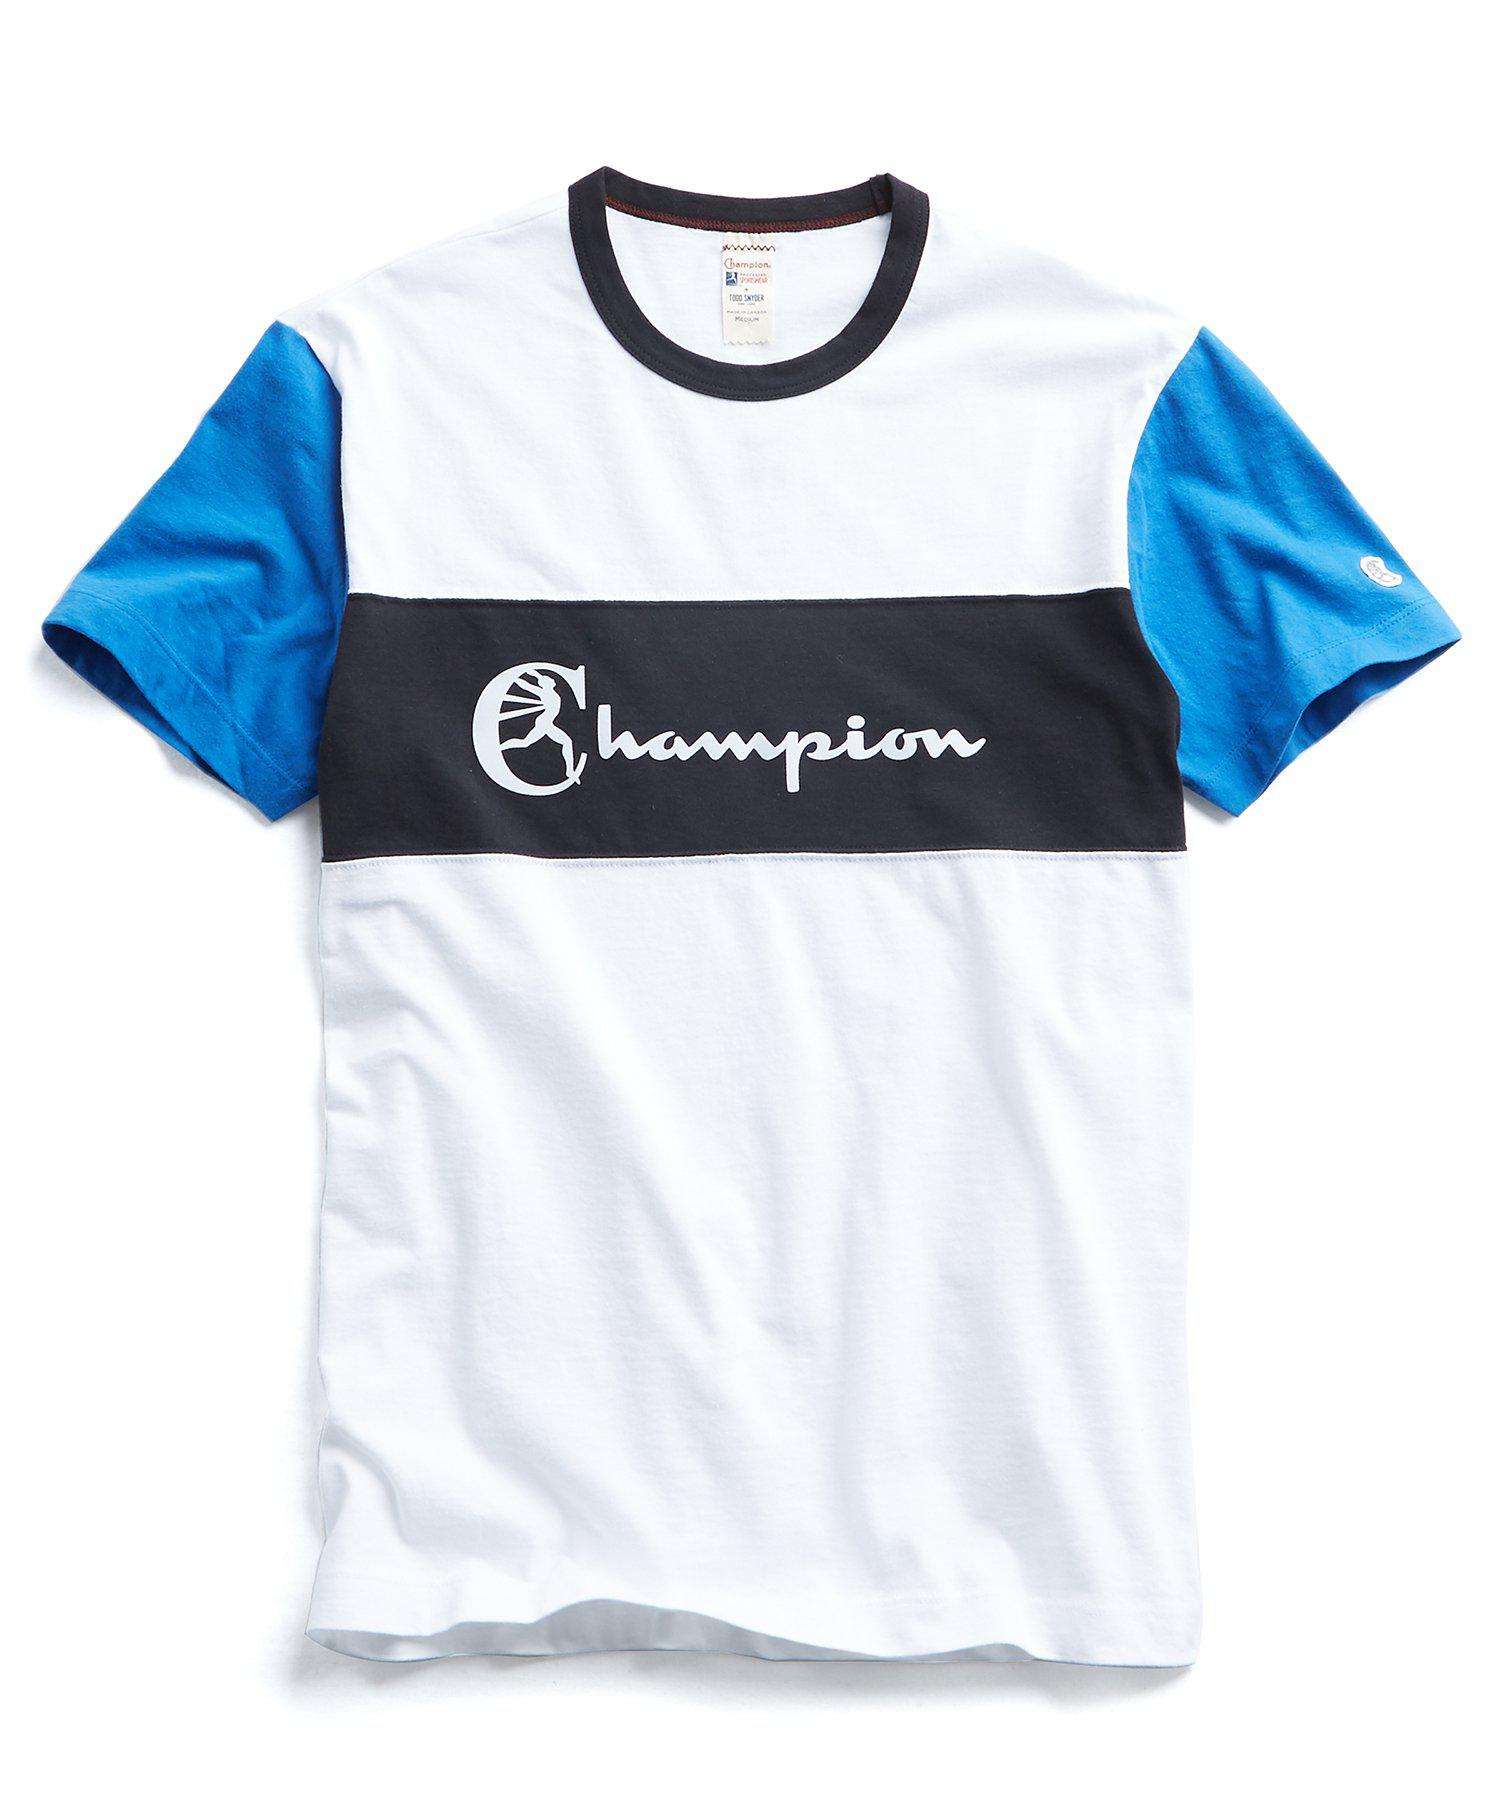 393f56693be4 Lyst - Todd Snyder Champion Pieced Graphic Tee In White in White for ...